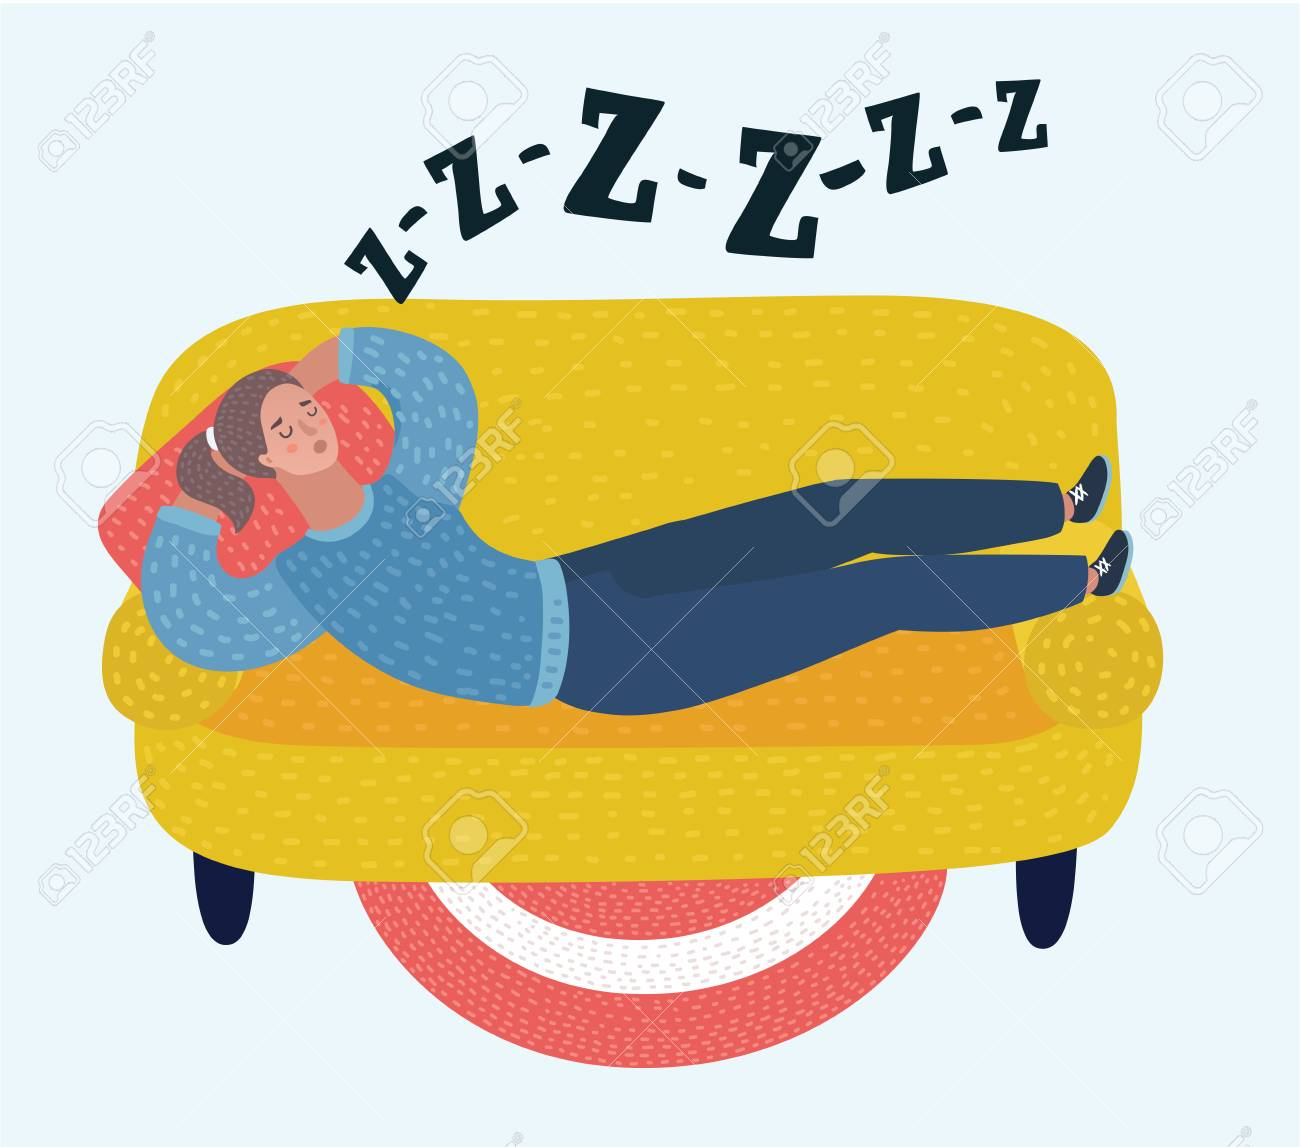 Vector Cartoon Illustration Of Woman Sleep On Sofa In Room Dreaming